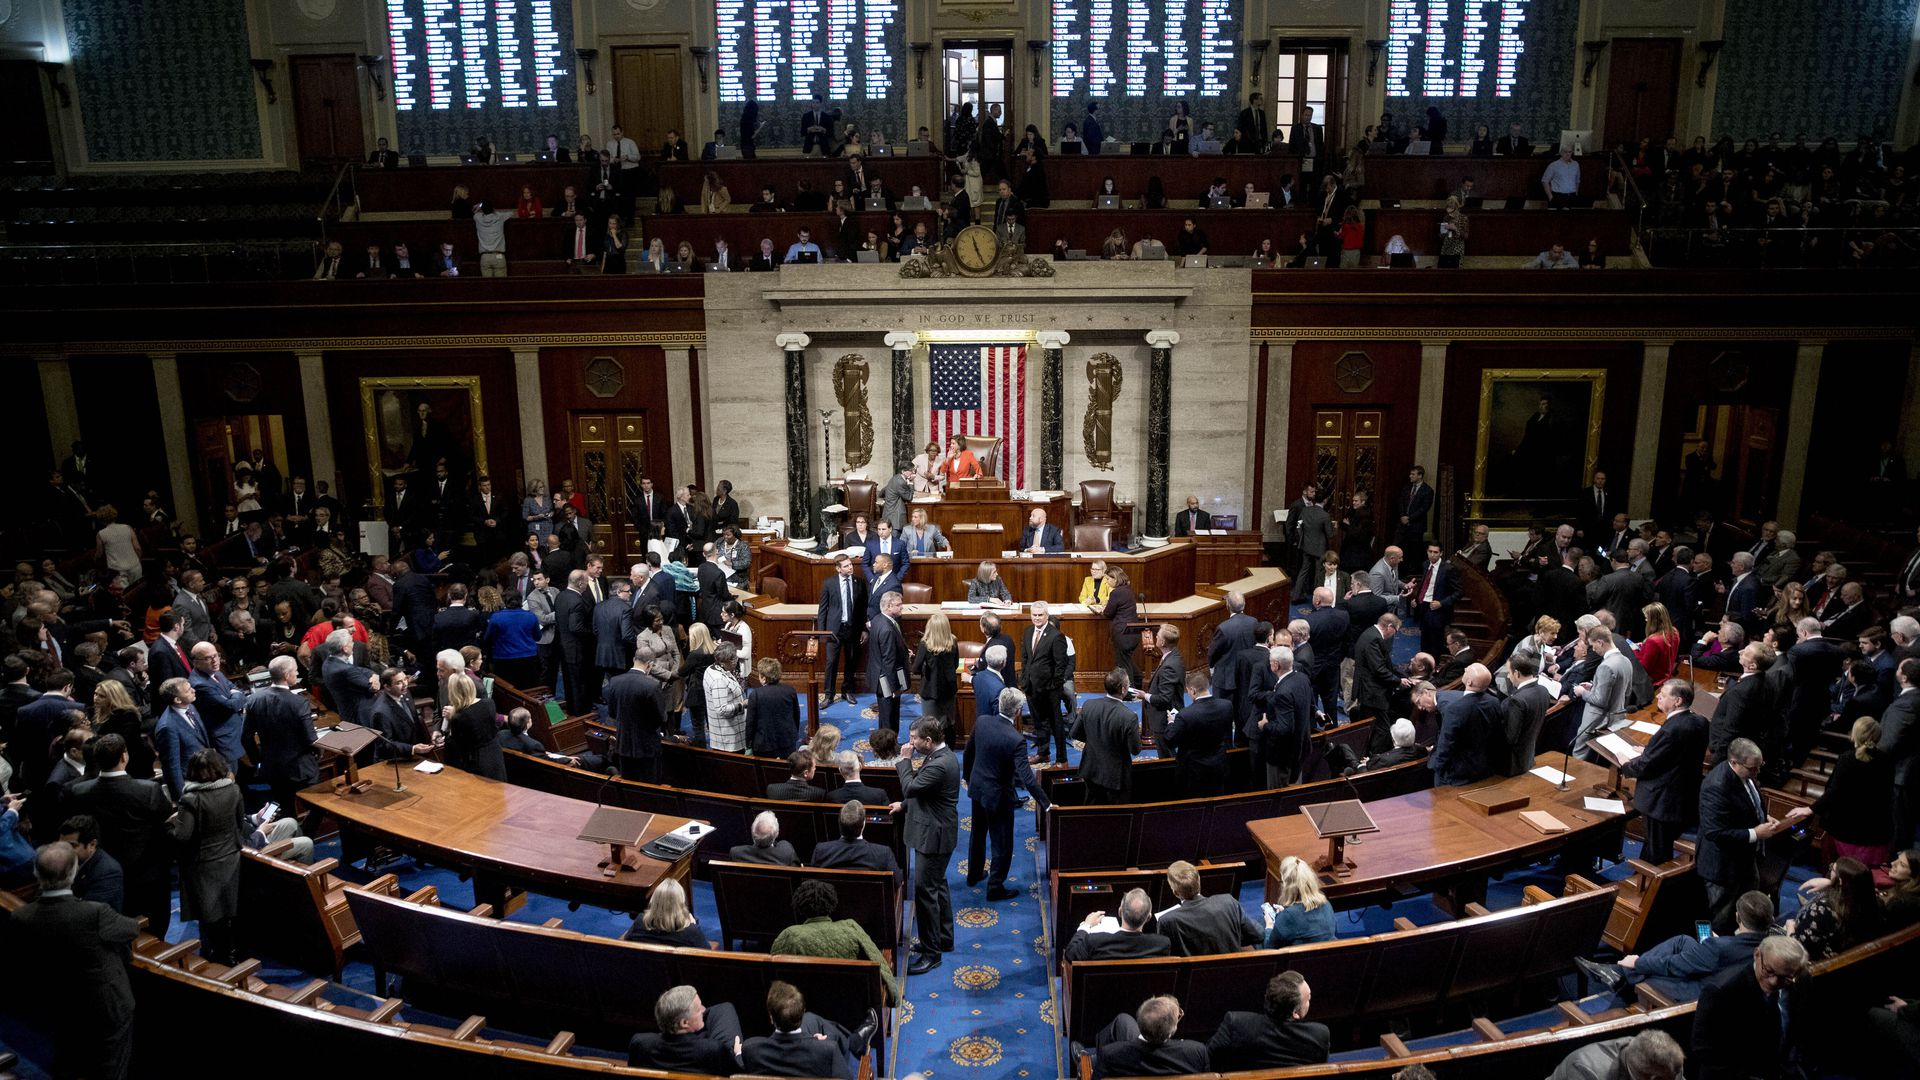 The floor of the House of Representatives packed with Congresspeople.